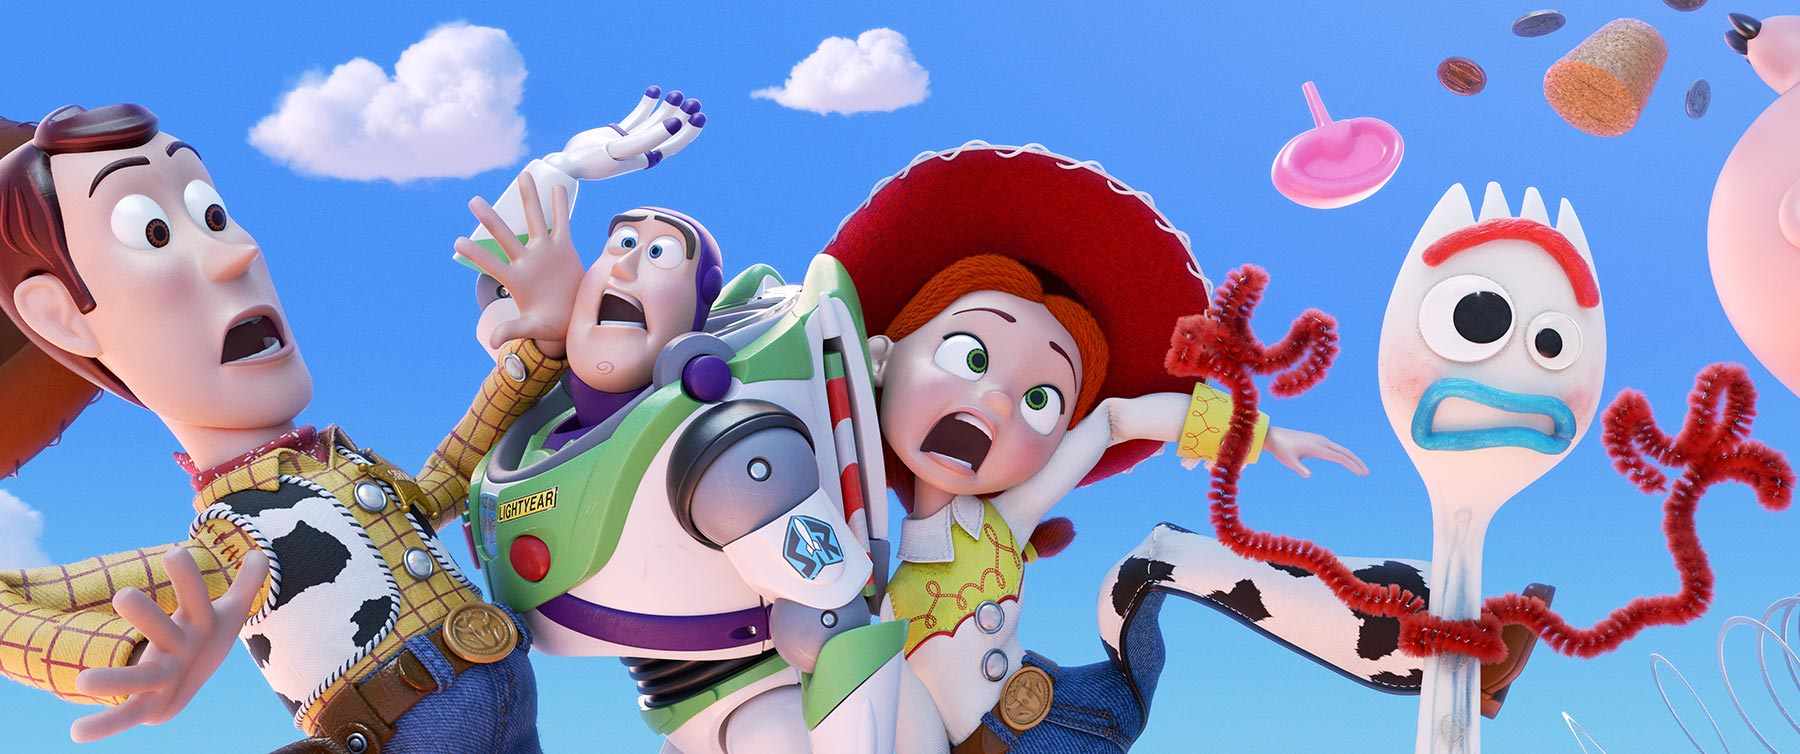 Toy Story 4: The Gang's All Back in First Trailer — Plus a Mysterious New Character! ts4-rgb-p960_100_pub-pub16-1467